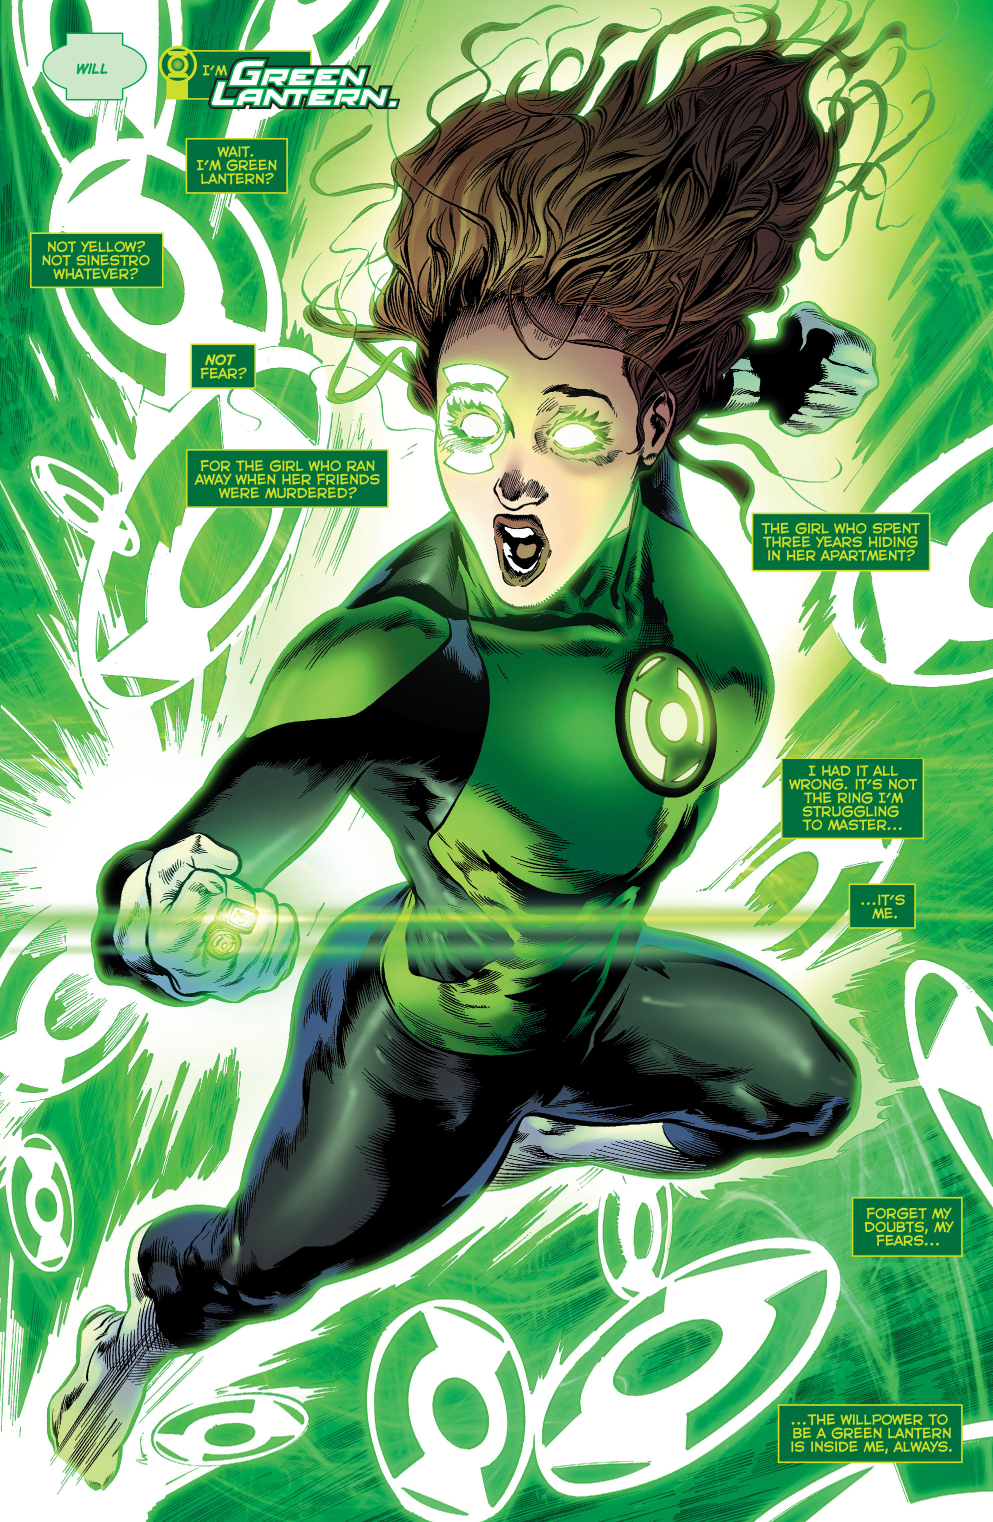 jessica-cruz-wears-the-phantom-ring